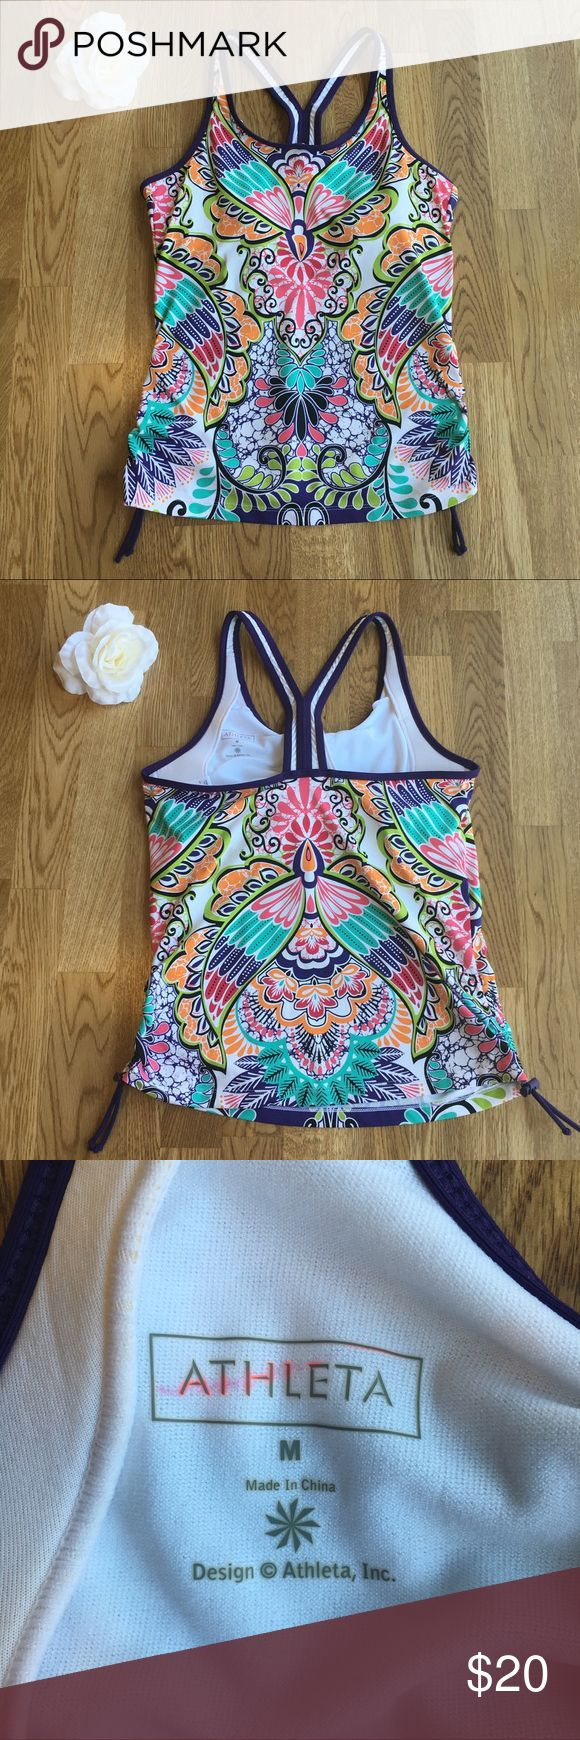 "Athleta ""Ready to Run"" Tankini Top Beautiful patterned Athleta tankini top! Advertised as being great for triathlons and other races/events that involve both running and swimming. Made of swimsuit material and has a built in support bra for the running portion of the event! Sides can be tightened to keep it in place! There is a pink mark/discoloration on the inside where the tag/logo is (see pic) but it does not affect the outside! Ask any questions and feel free to make an offer :) Athleta…"